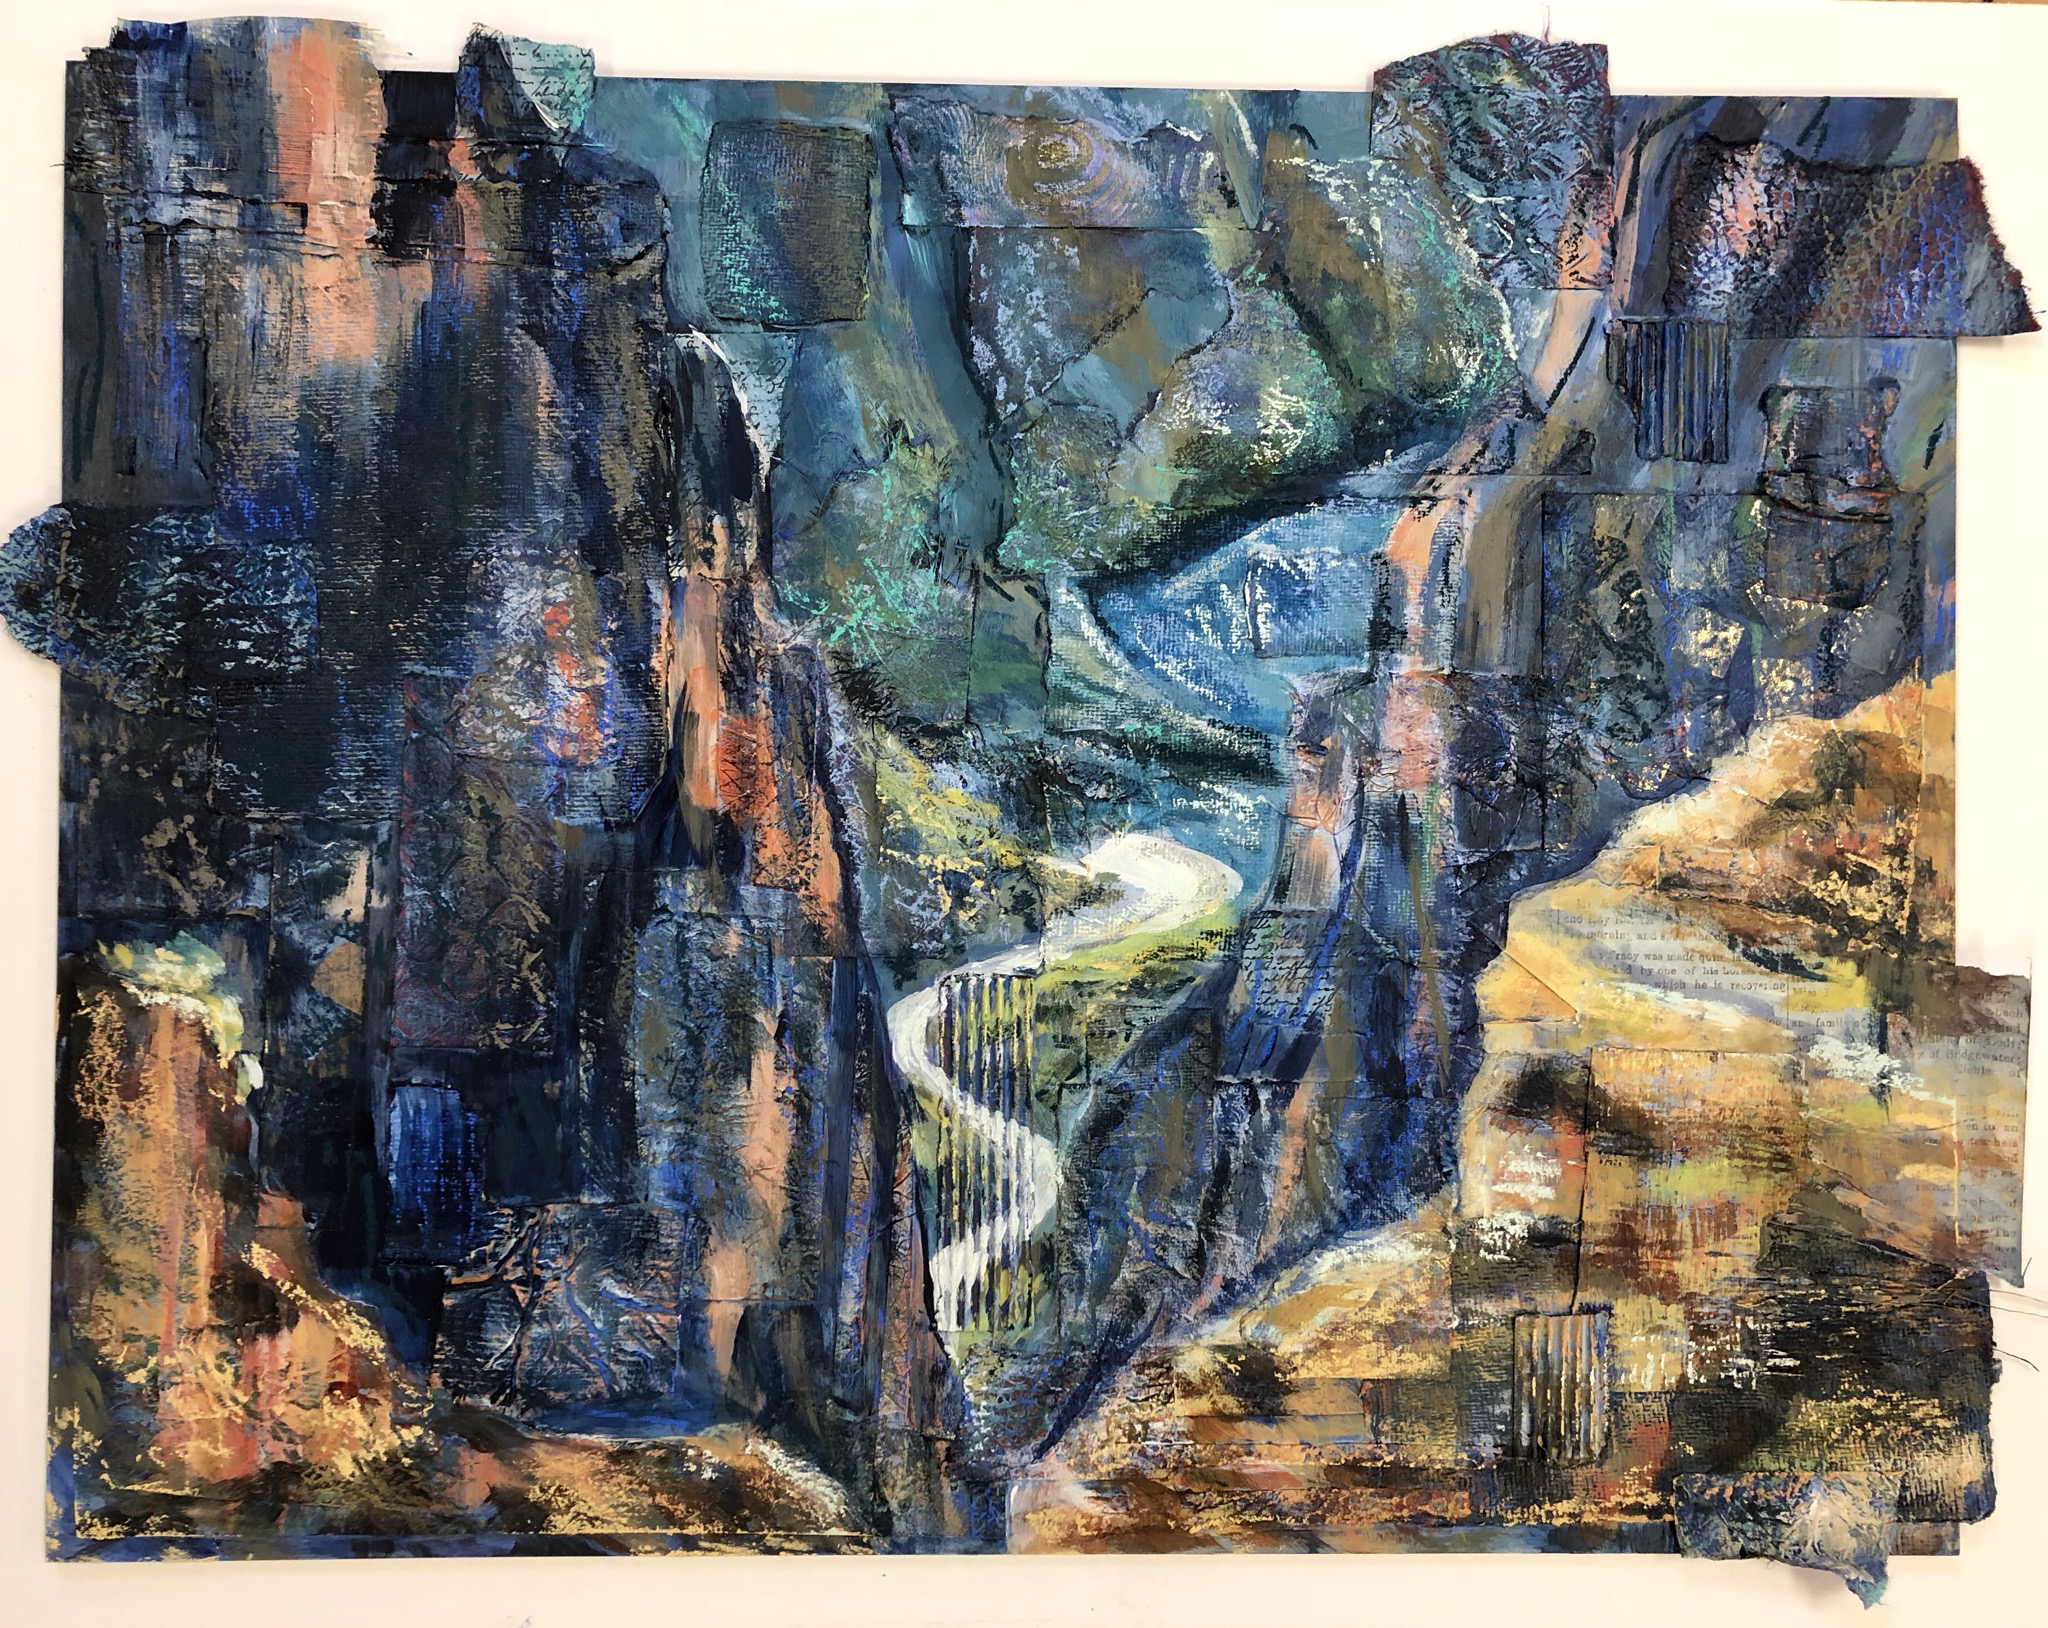 Water Carving Stone, Black Canyon of the Gunnison - mixed media